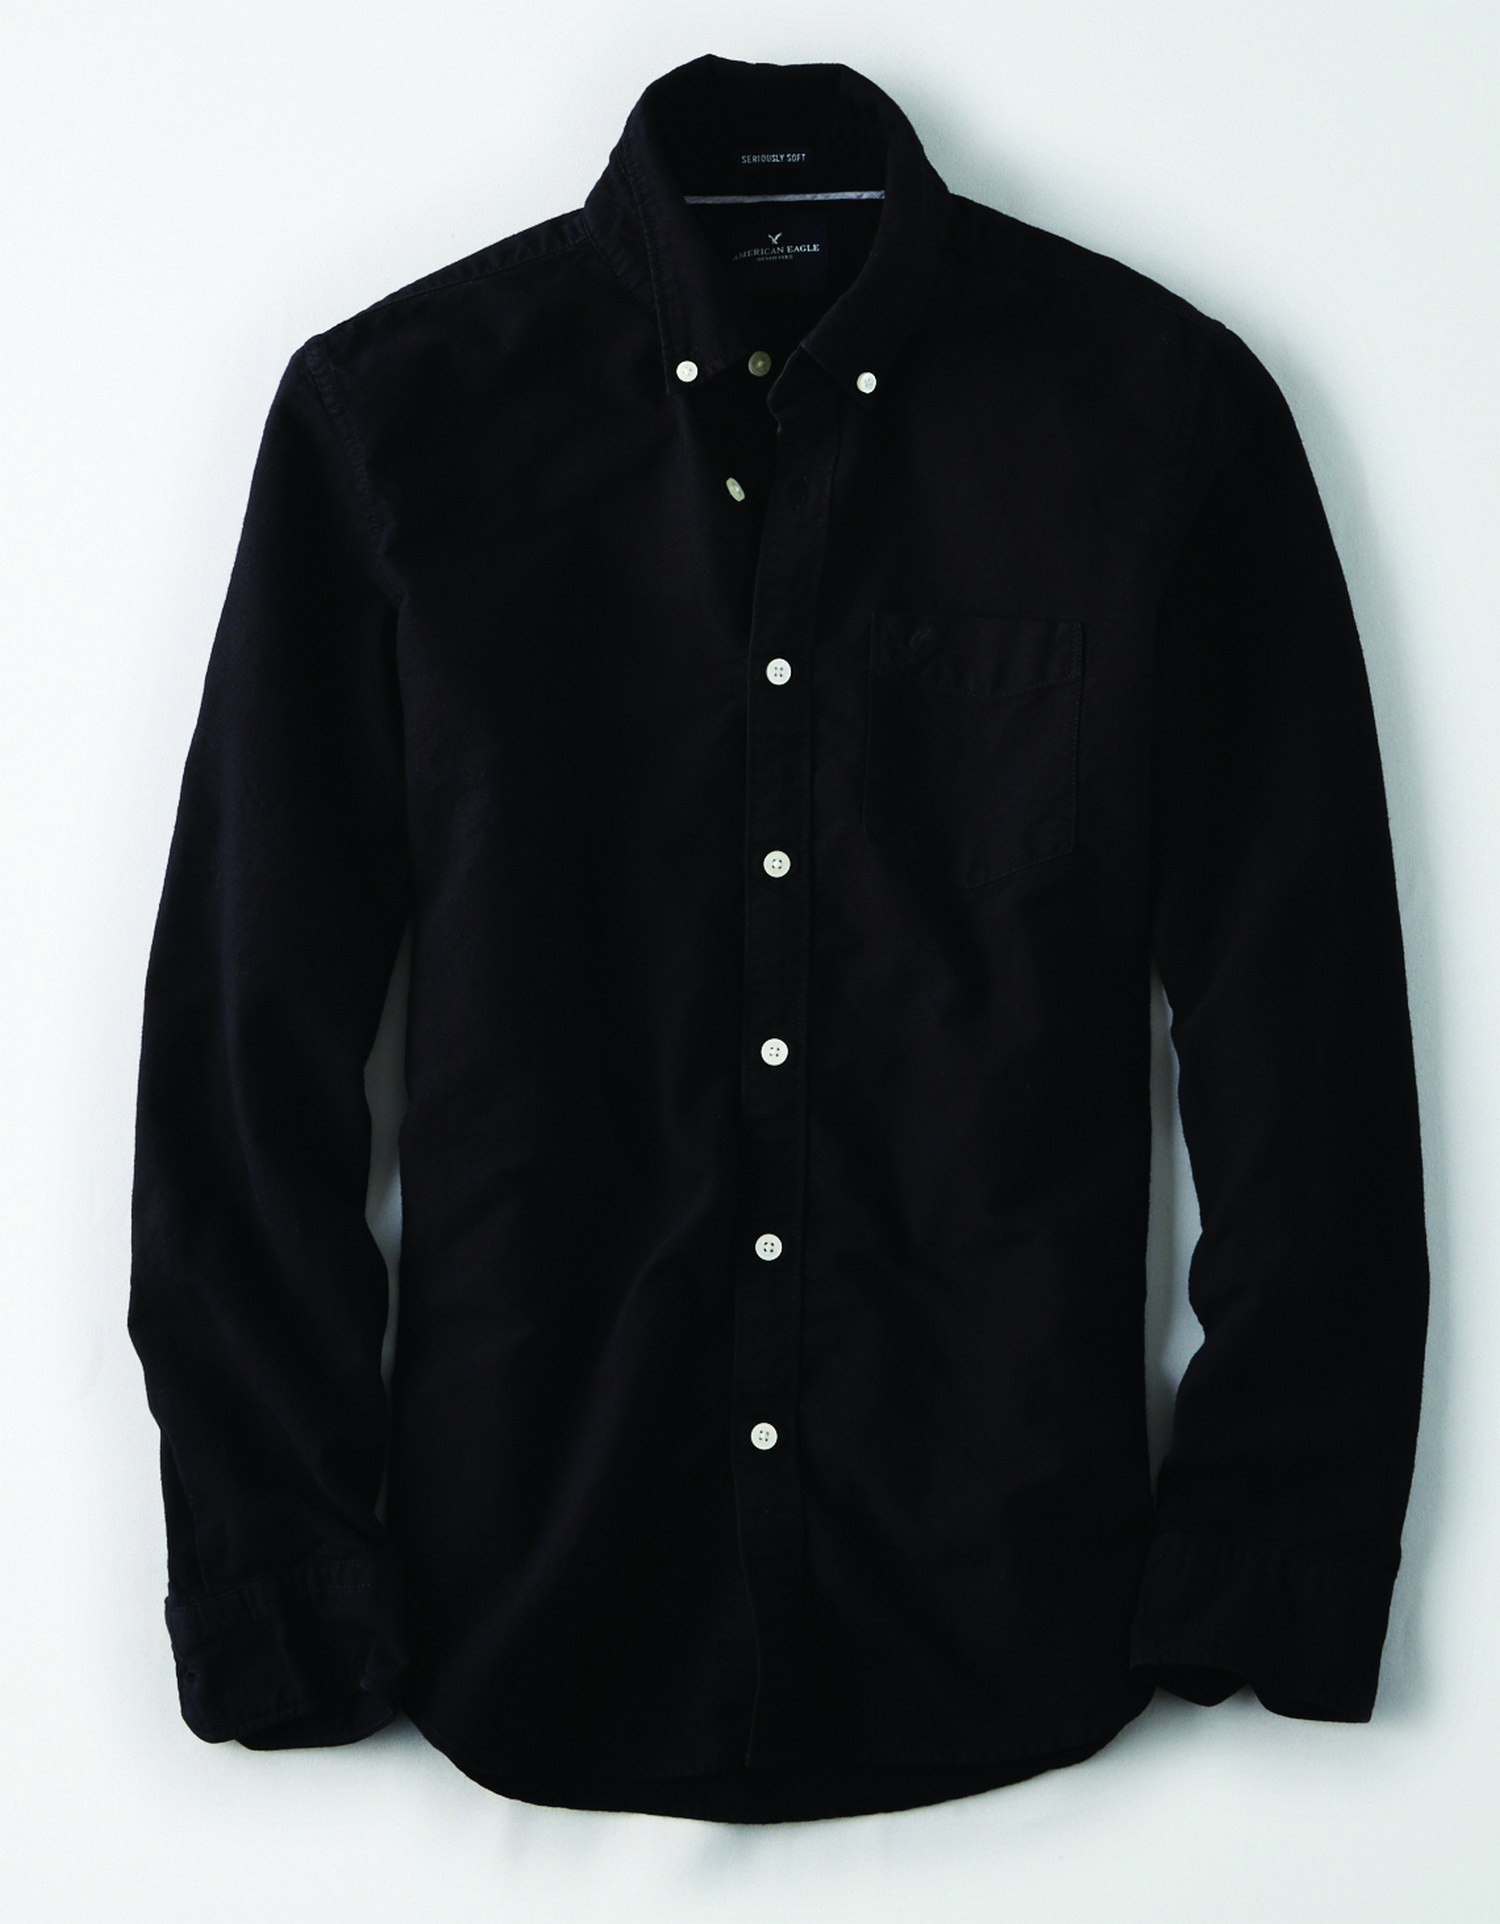 AE - INTL - Apparel - M - SF YD OXFORD - Black - Solid Color - White buttons - Left chest pocket - black embroidered eagle on left chest BG